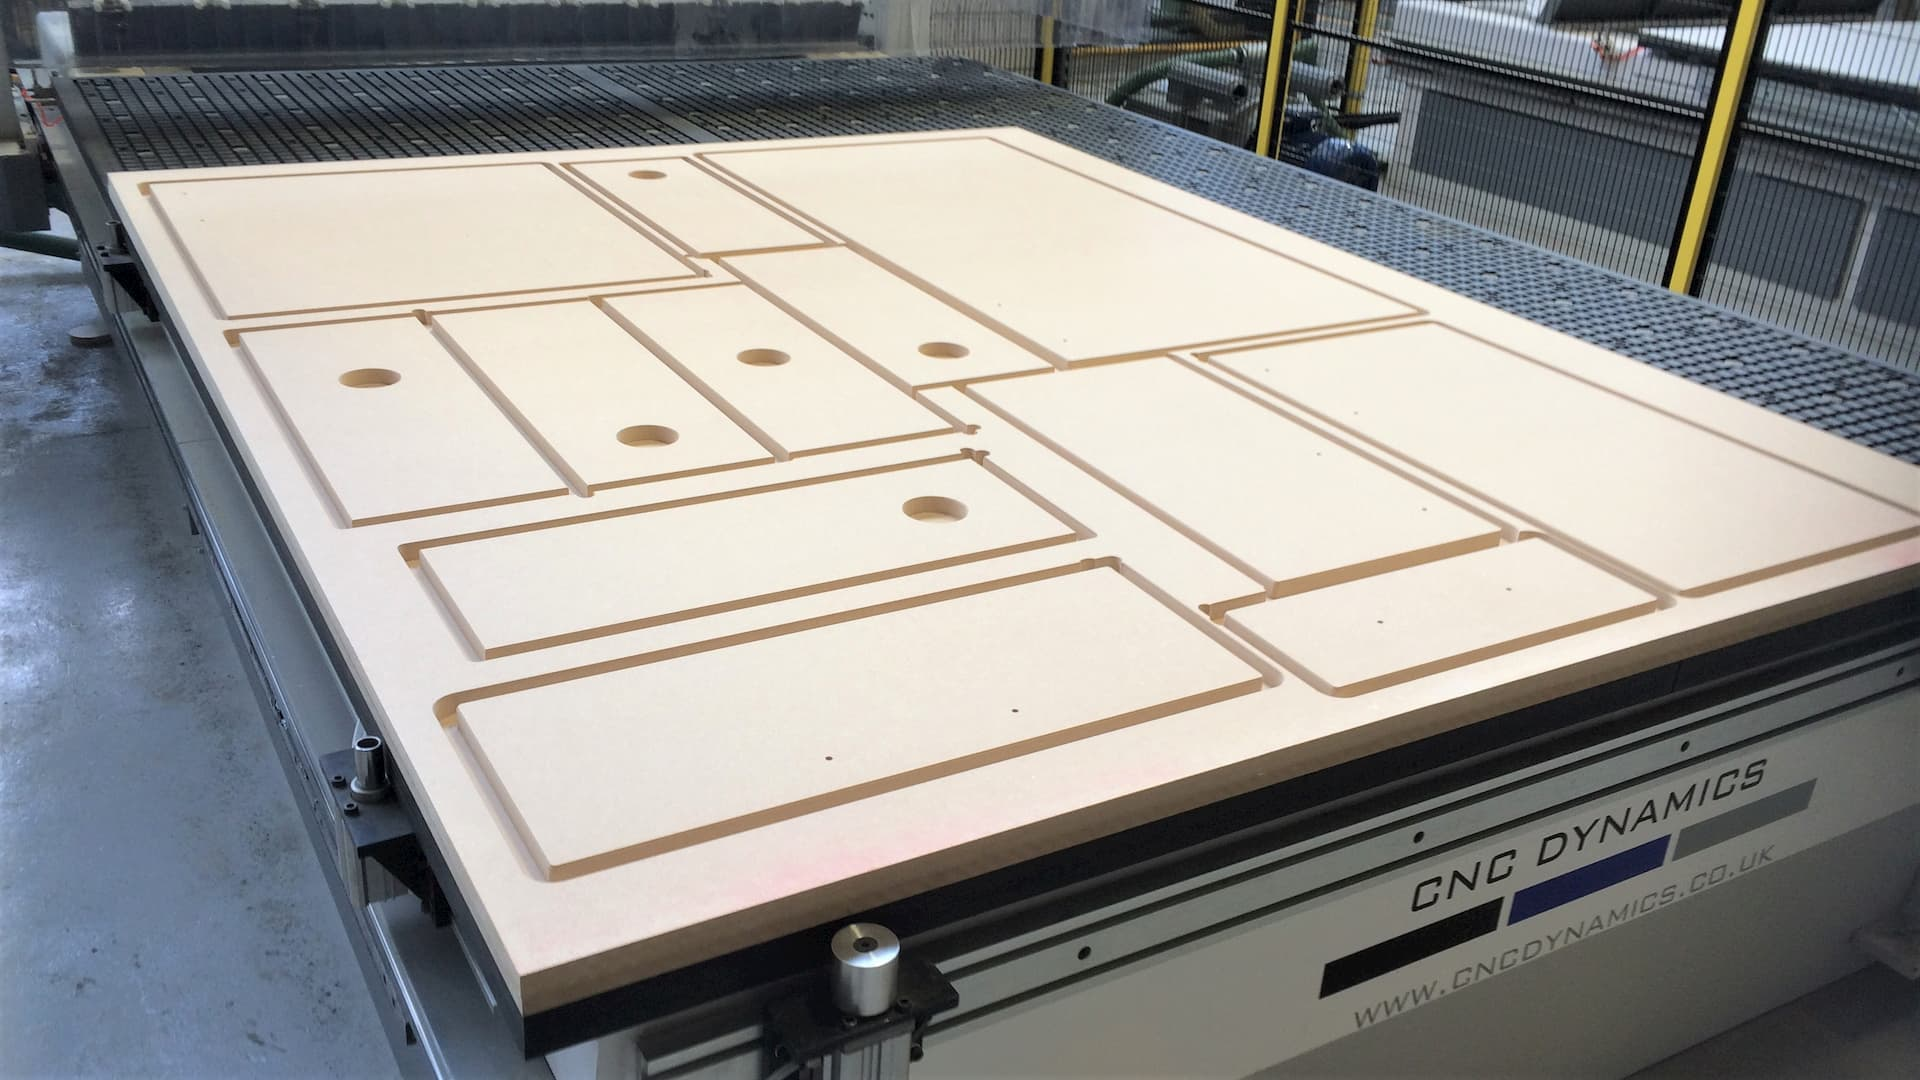 CNC Nesting: All About This CNC Cutting Method | All3DP